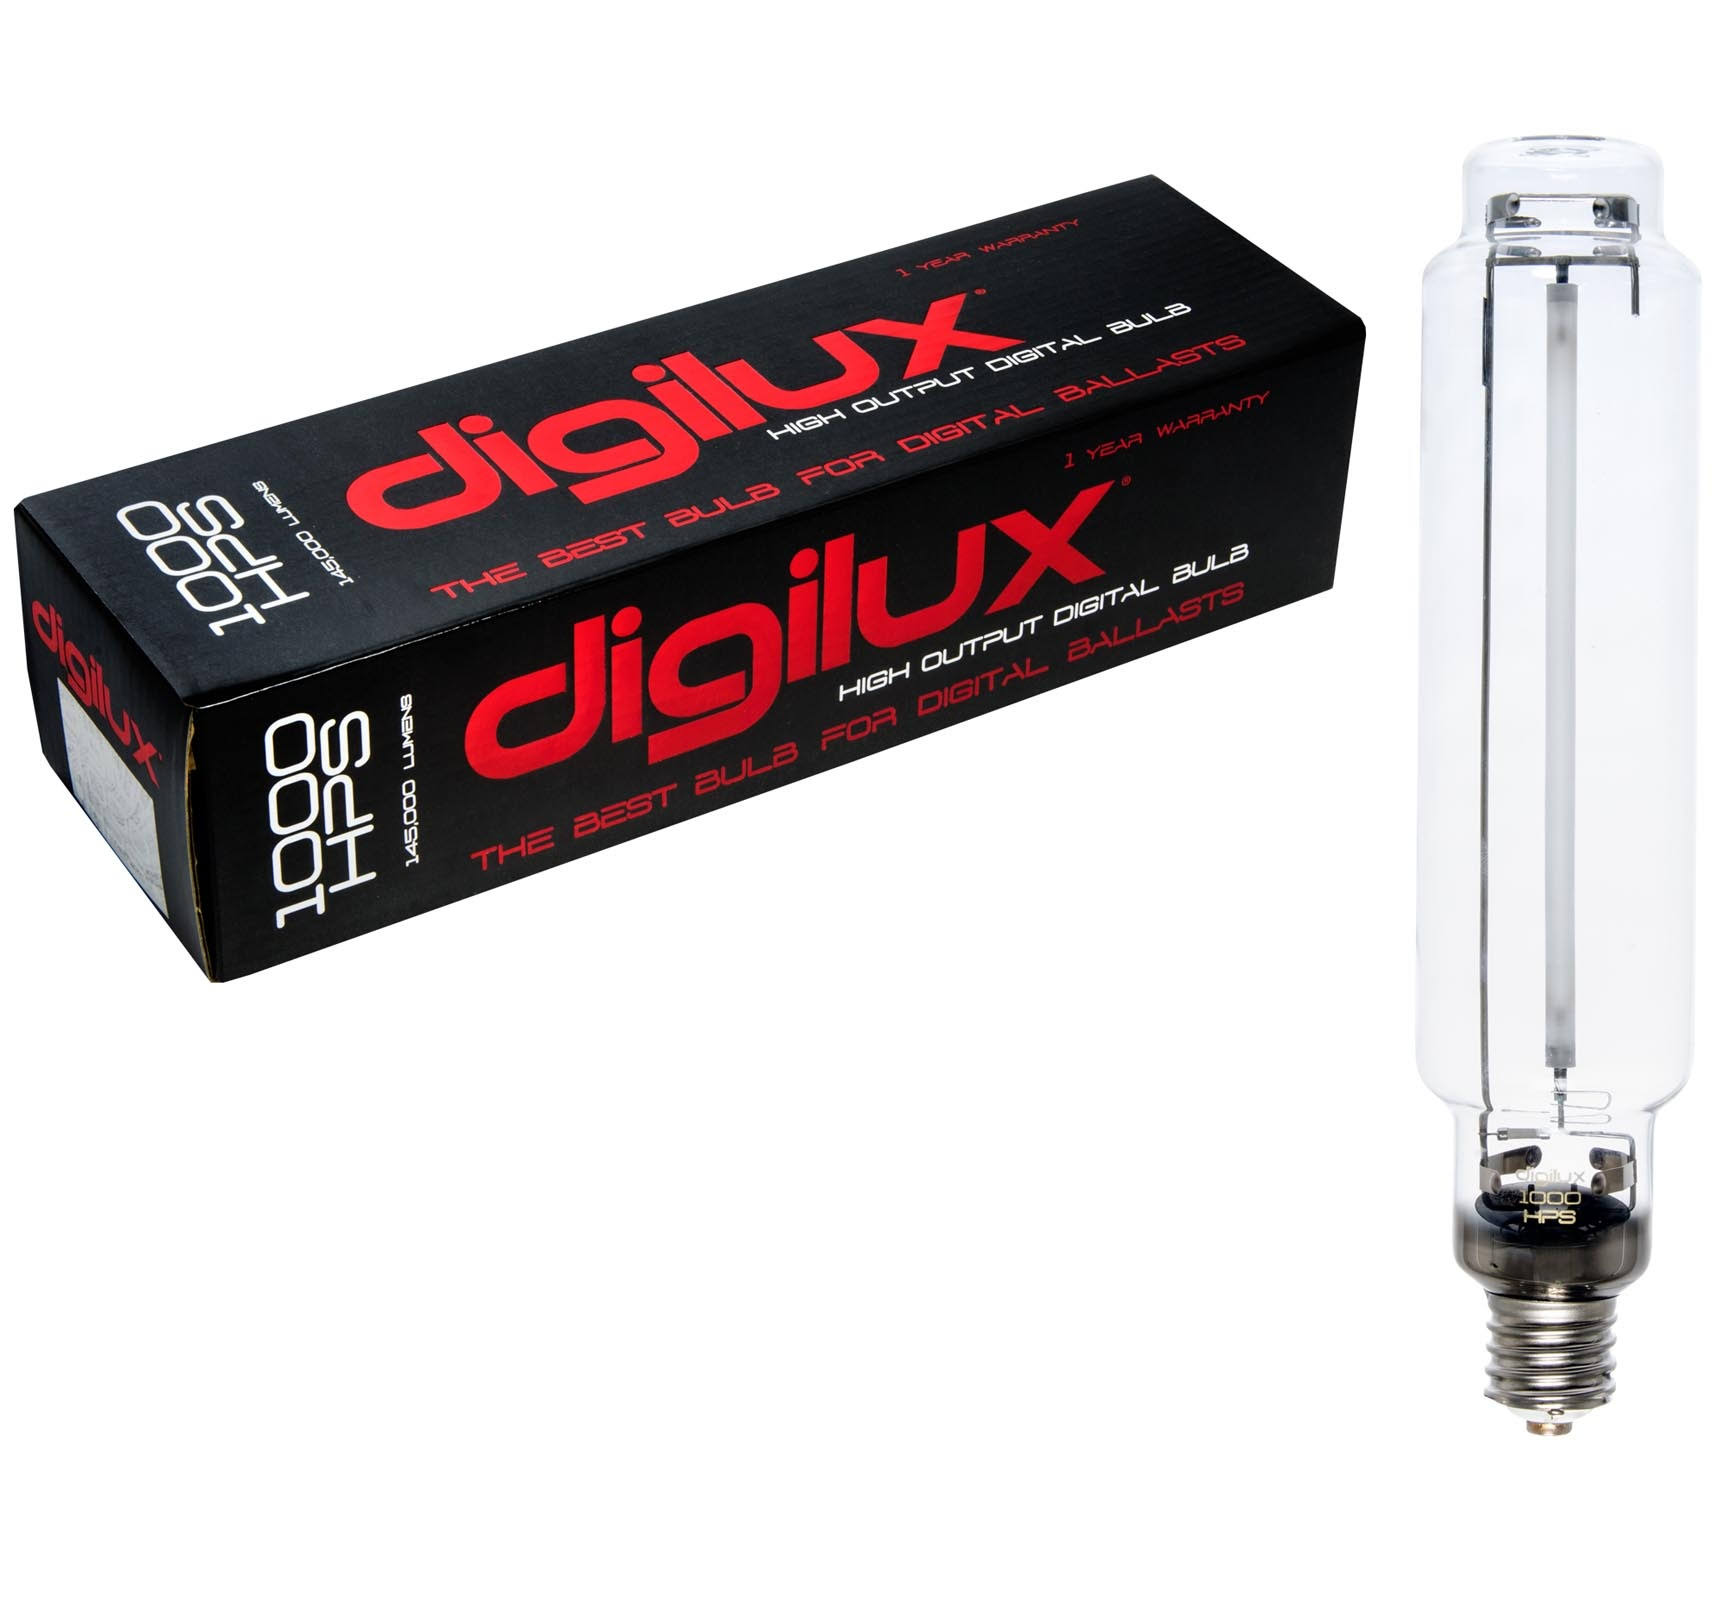 Digilux HPS Digital Hydroponics Grow Light Bulb - 1000W